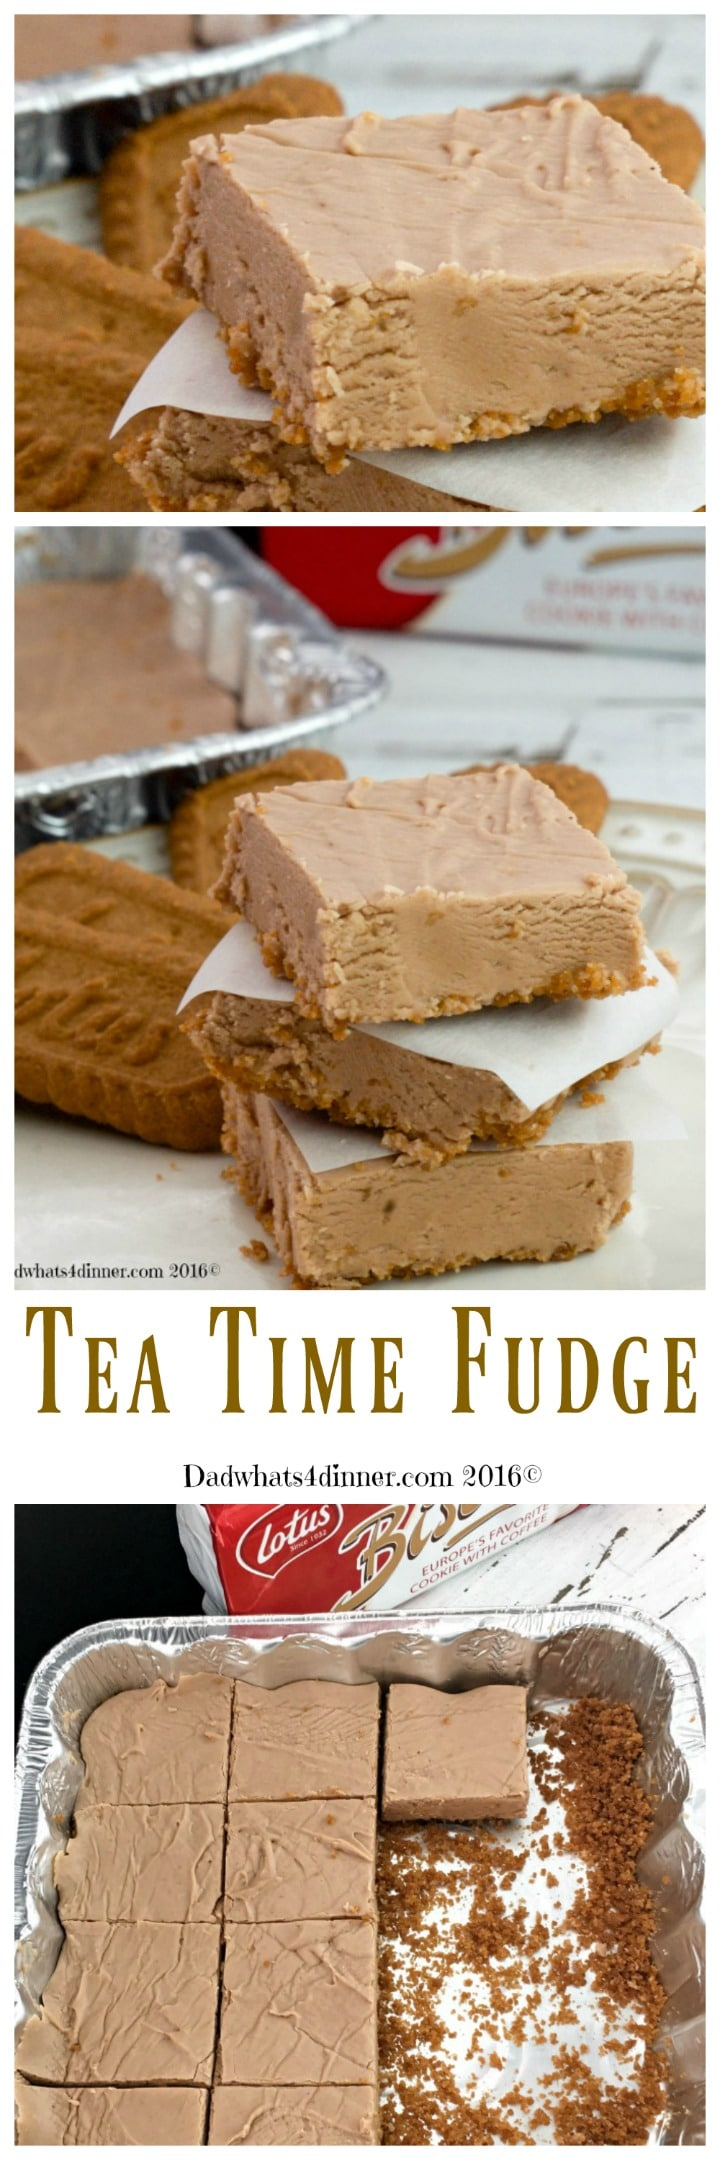 Tea Time Fudge combines a few of my favorite things. Peanut Butter, Chocolate and Biscoff Cookies to make a melt in your mouth, one of a kind fudge.